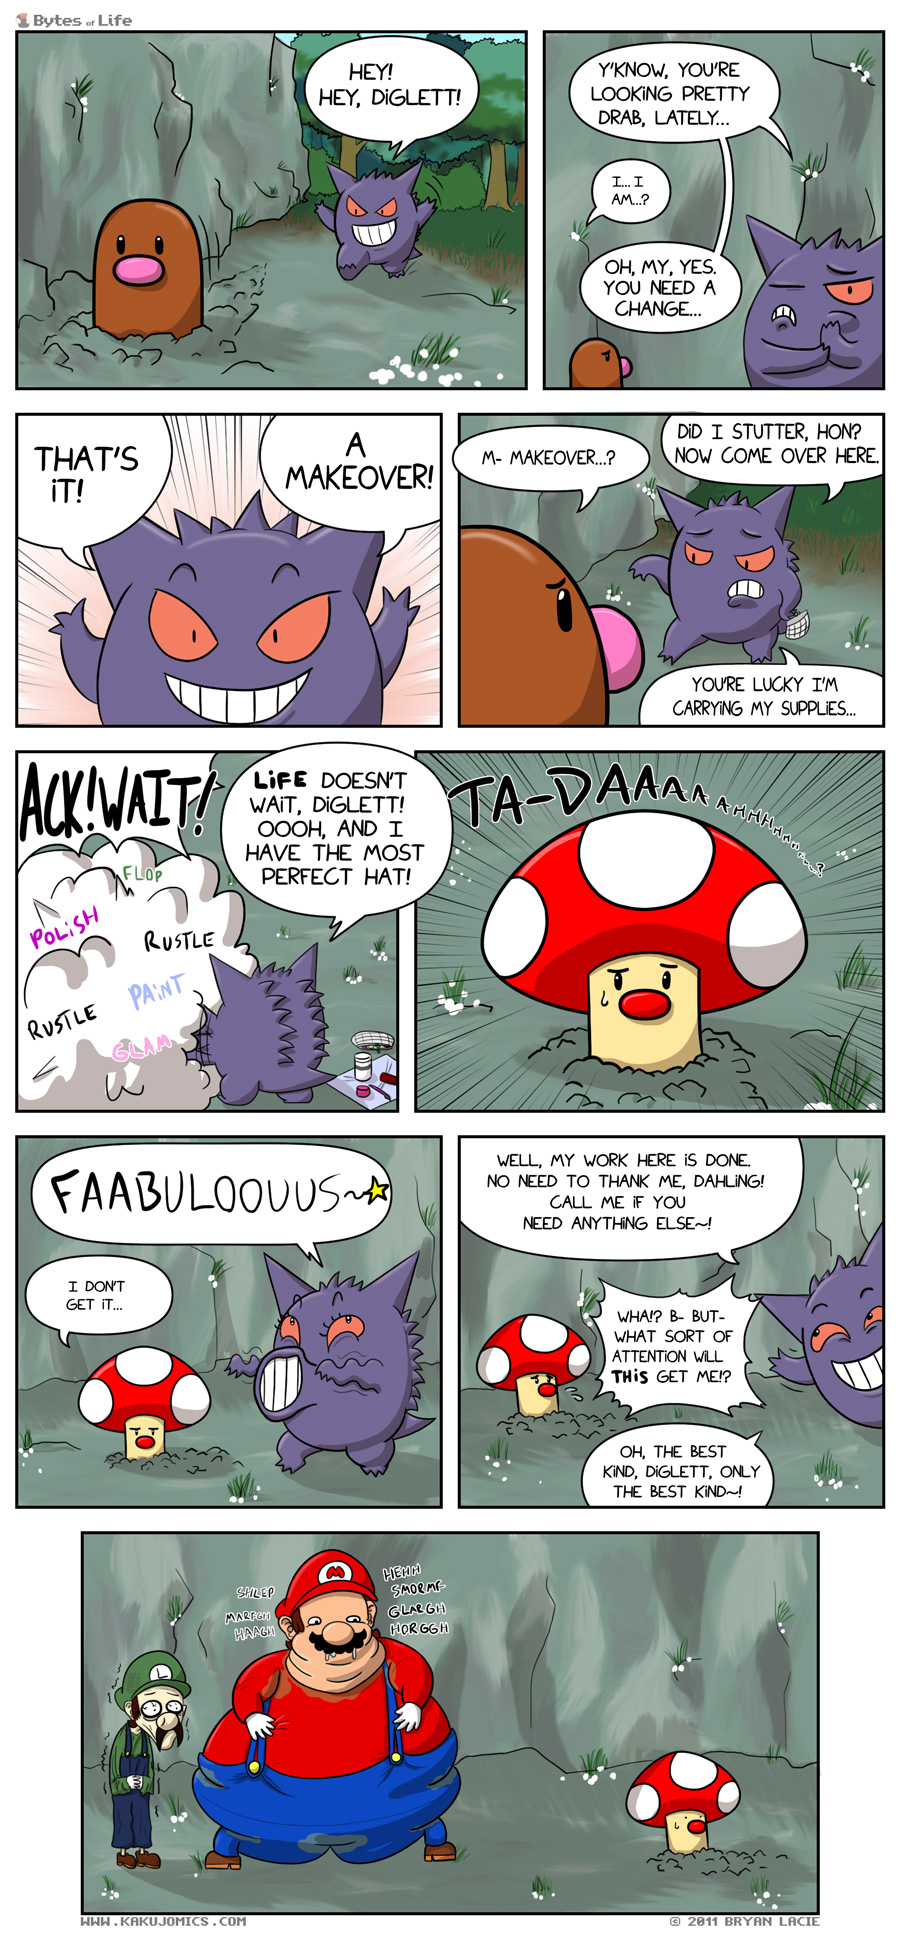 I guess you could say... *sunglasses* Diglett is in a Ghastly predicament...